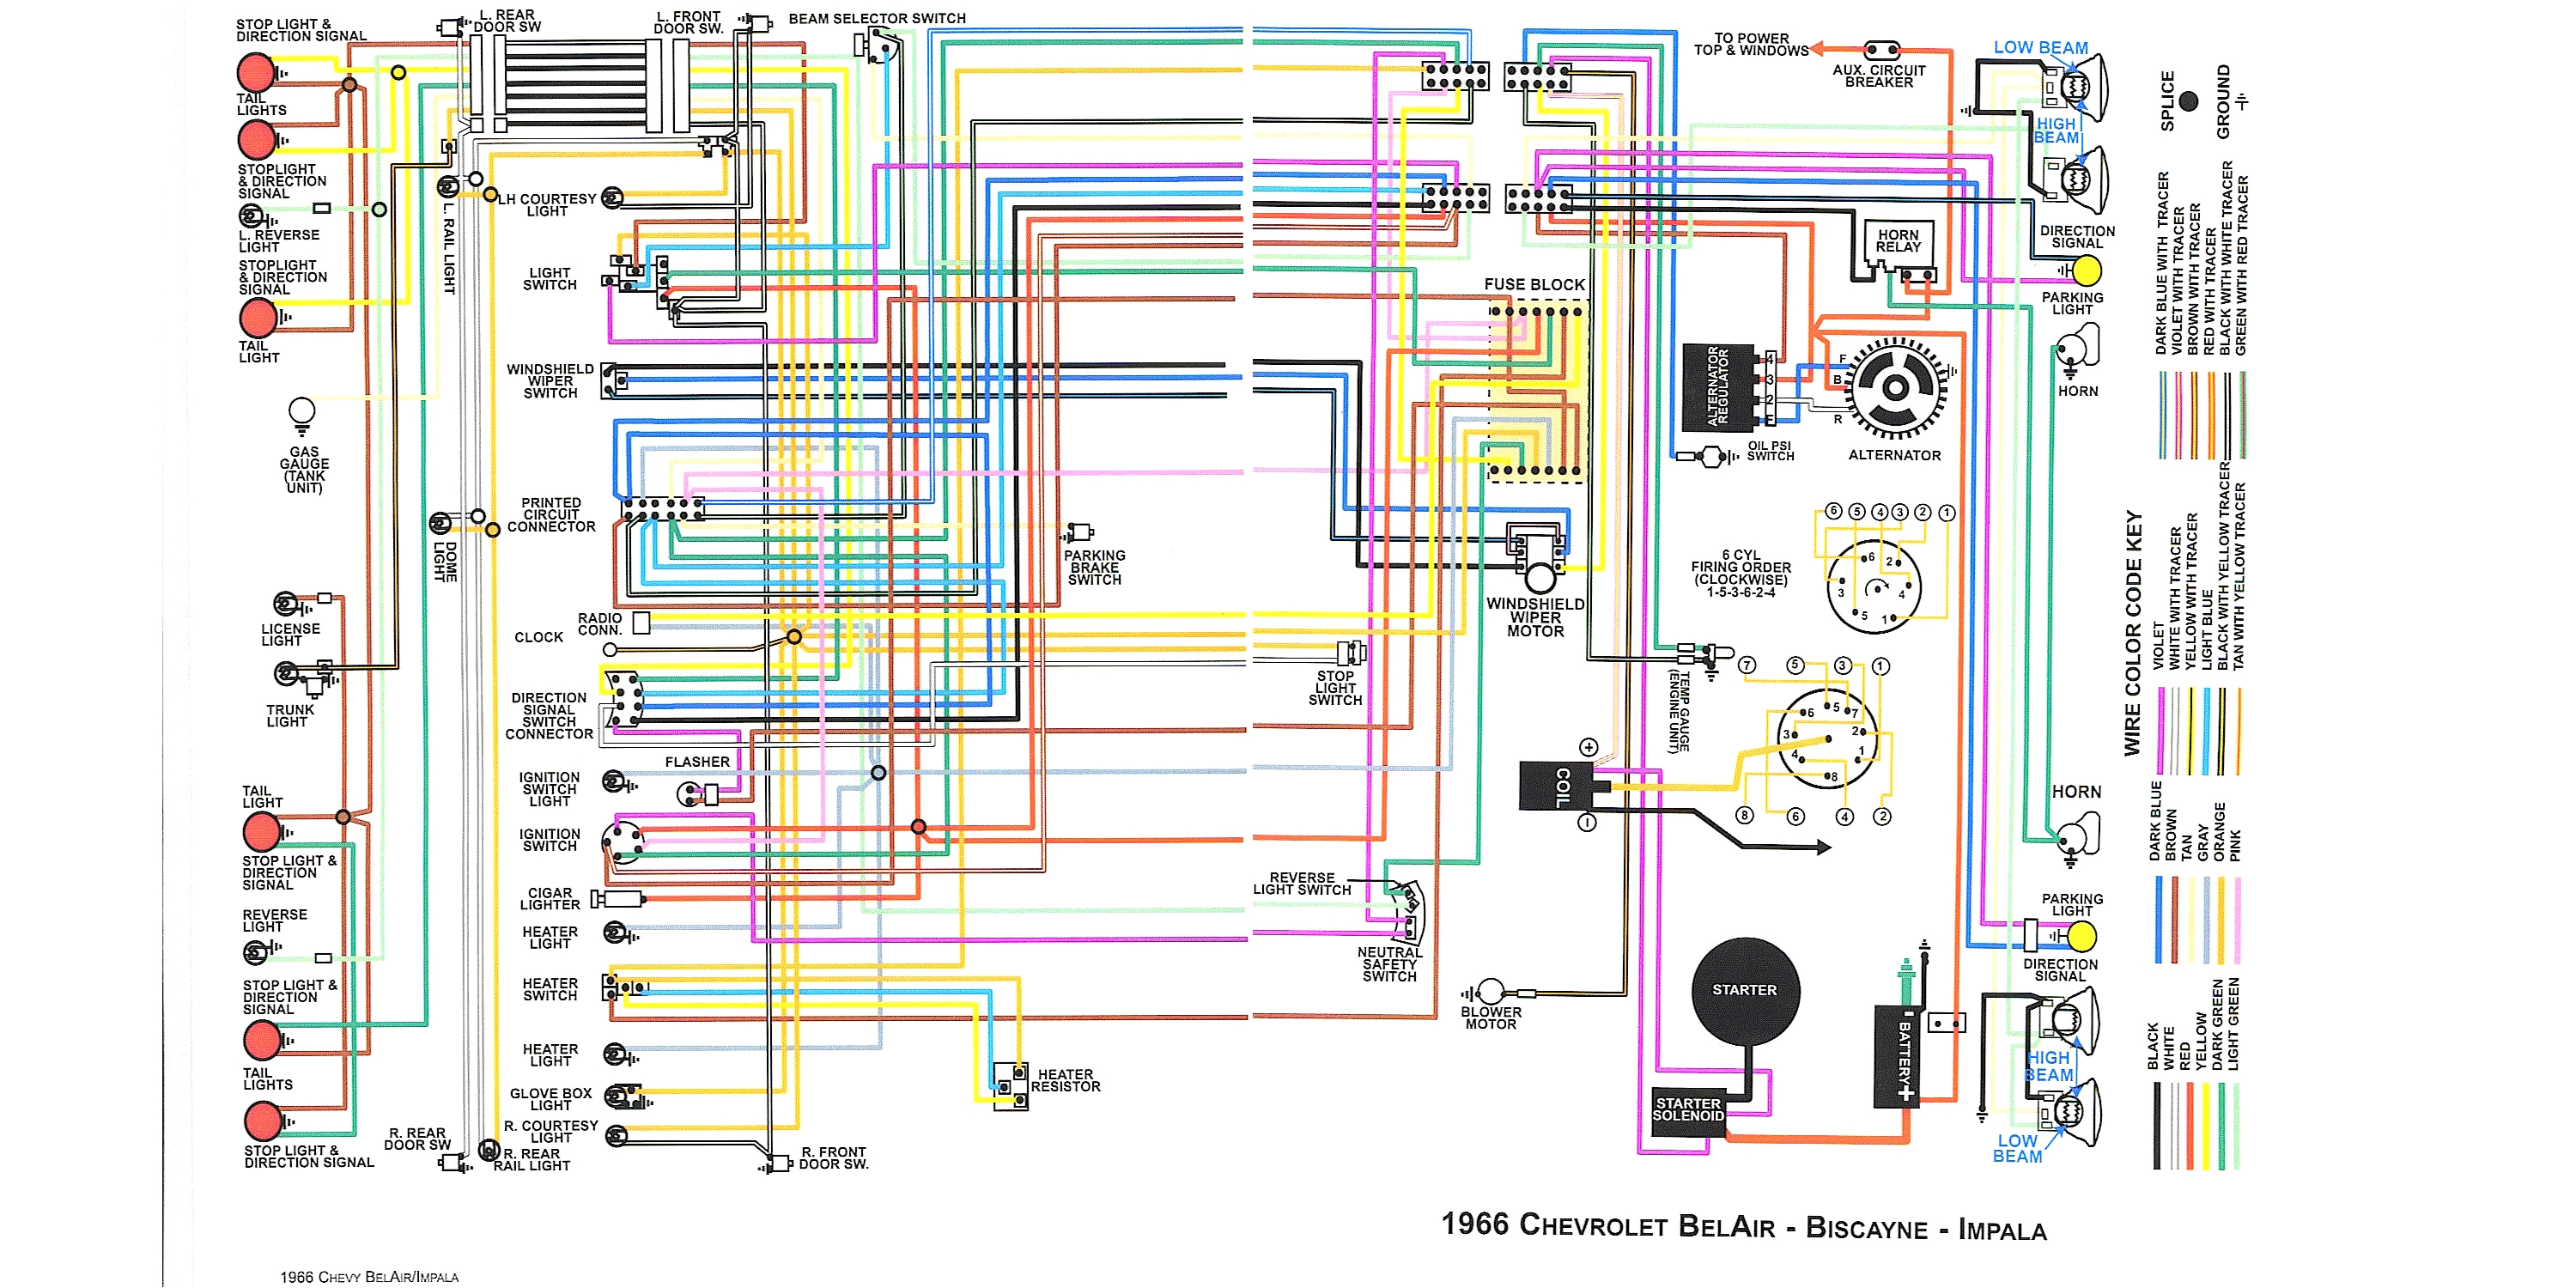 70 mustang wiring diagram wiring diagram technic 1967 mustang ignition switch wiring lzk gallery